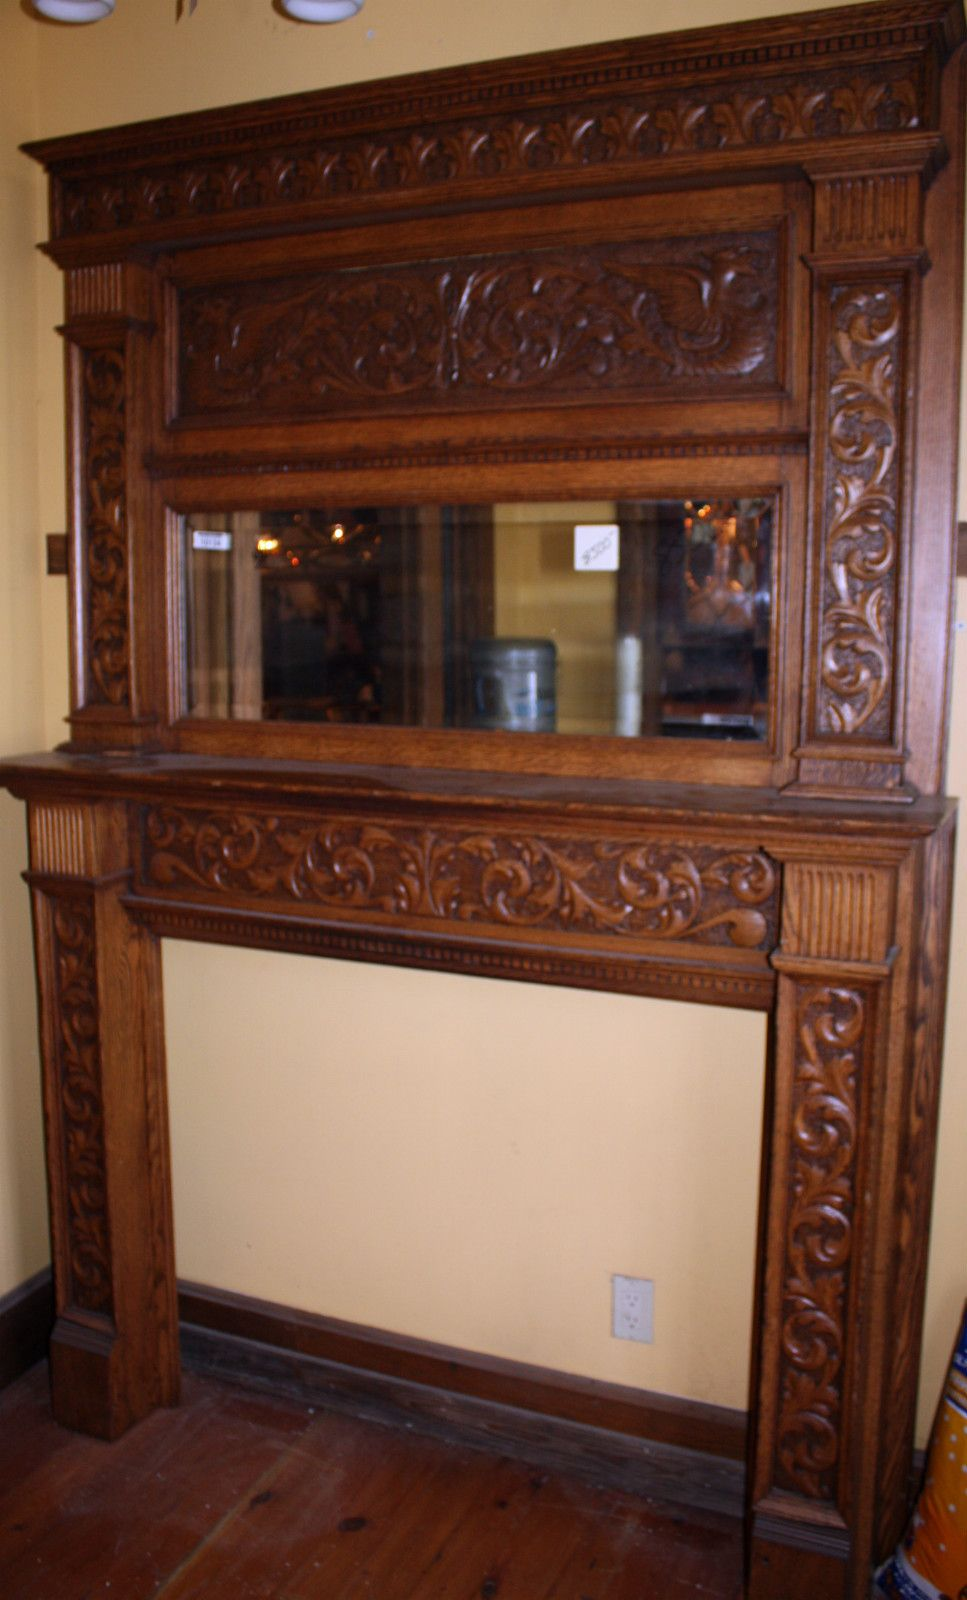 Antique Fireplace Mantels For Sale Antique Oak Fireplace Mantel Antique Fireplace Mantels